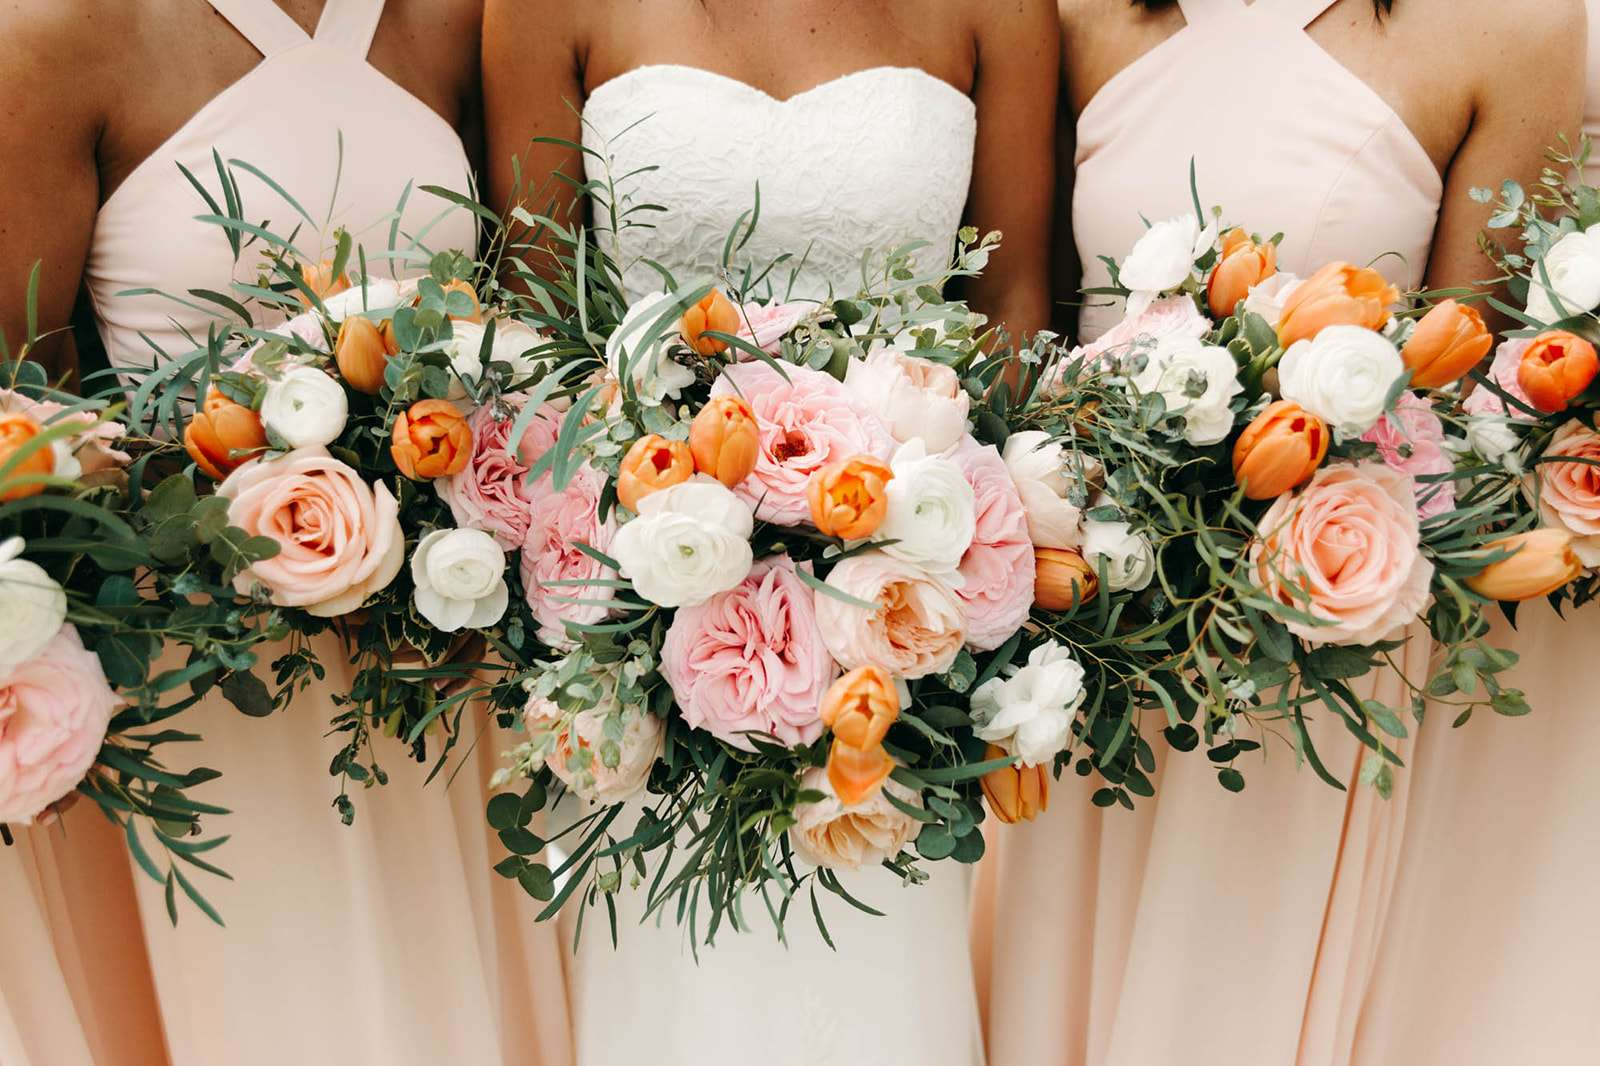 Bridesmaids bouquets at River House wedding